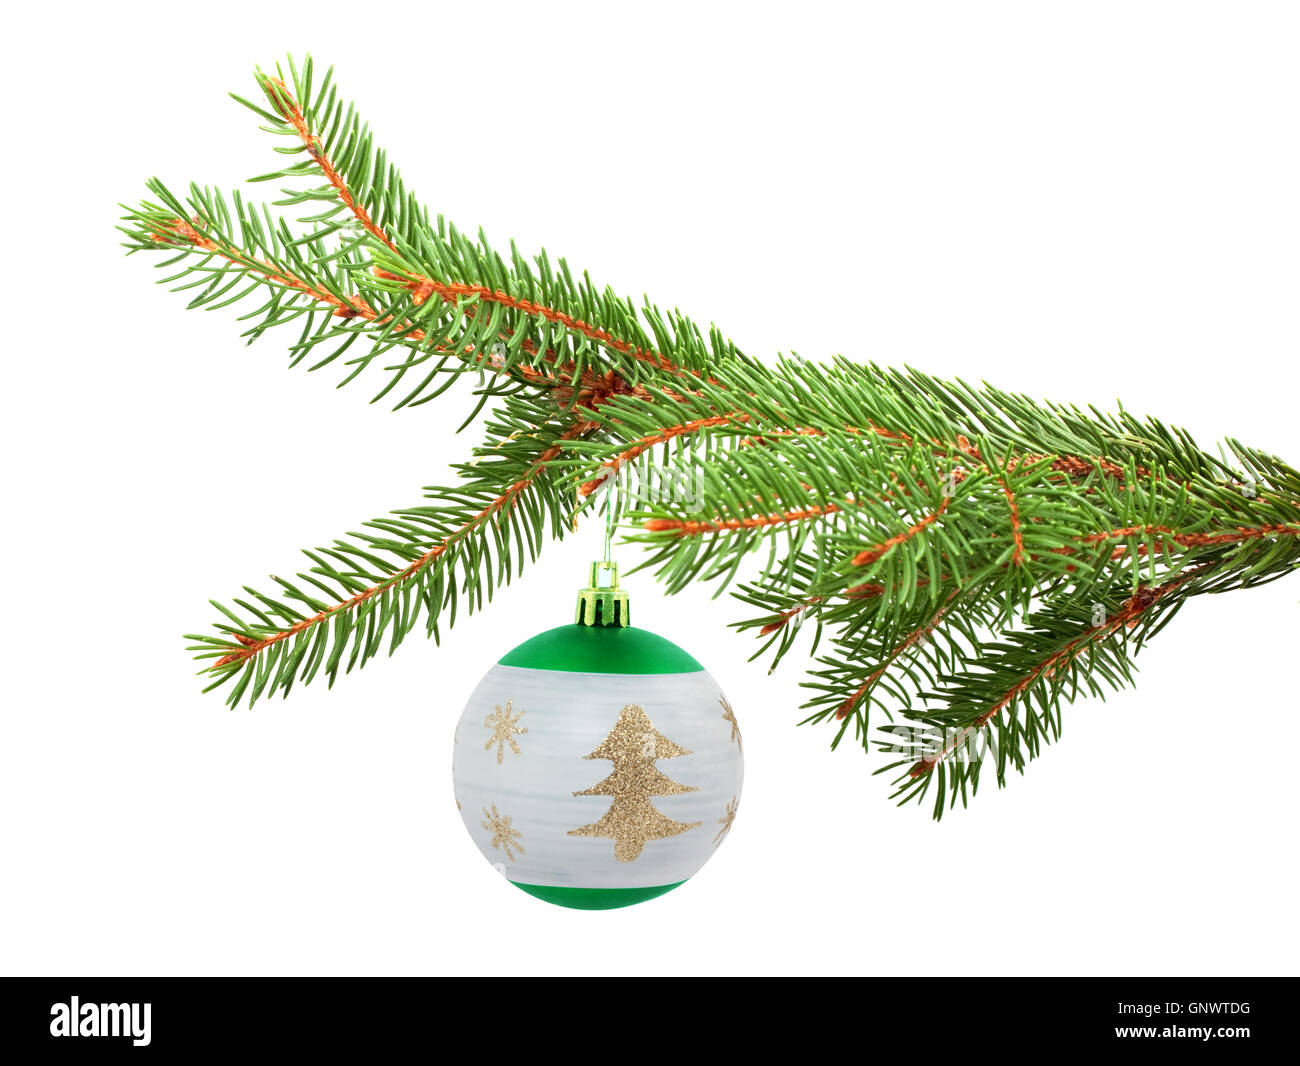 Branch with a Christmas toy - Stock Image